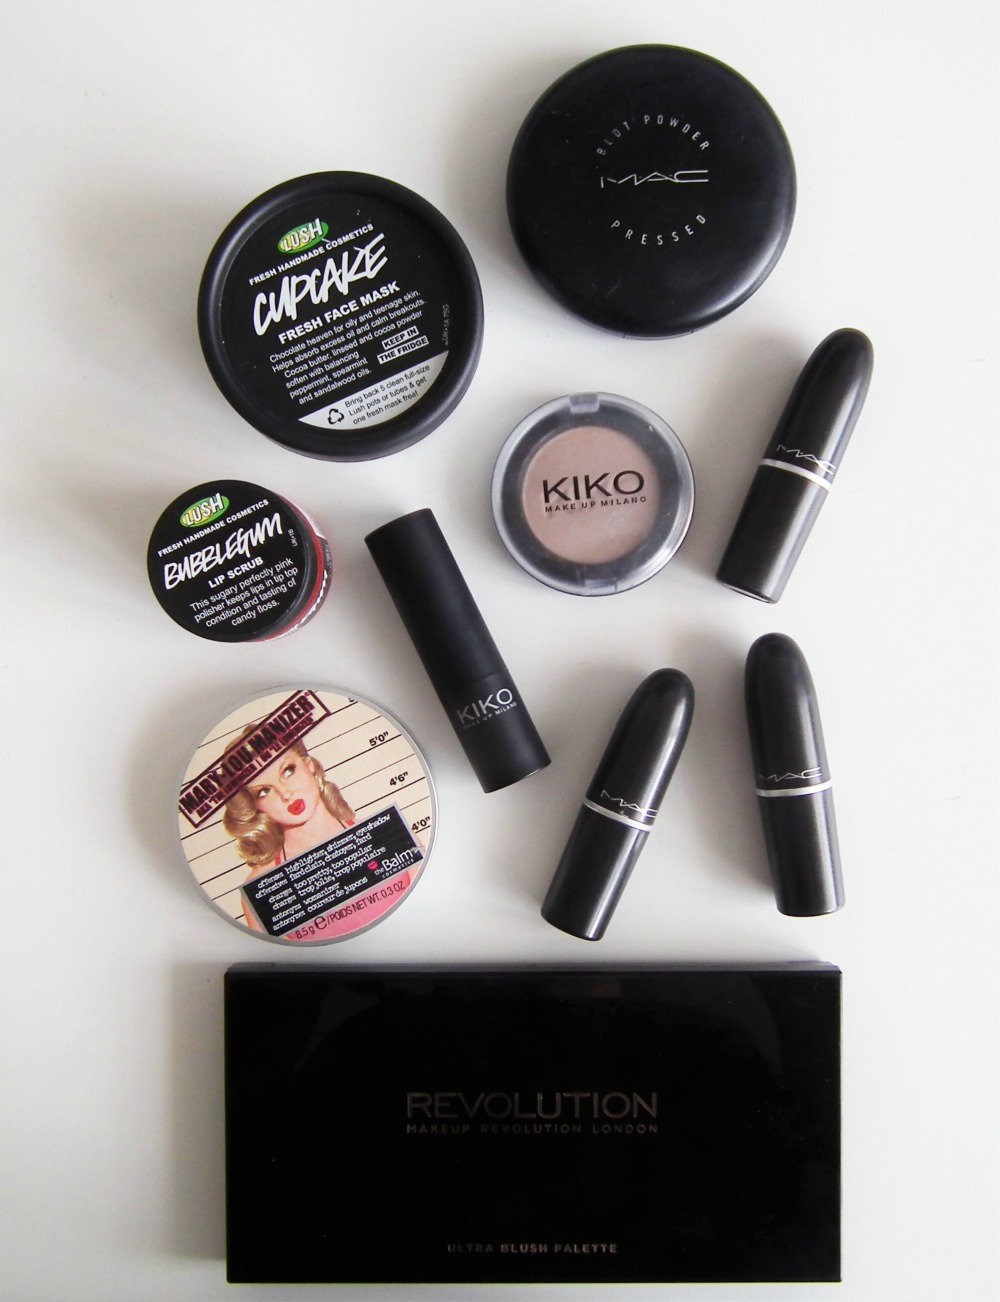 5 Beauty Brands I Want To Try More From